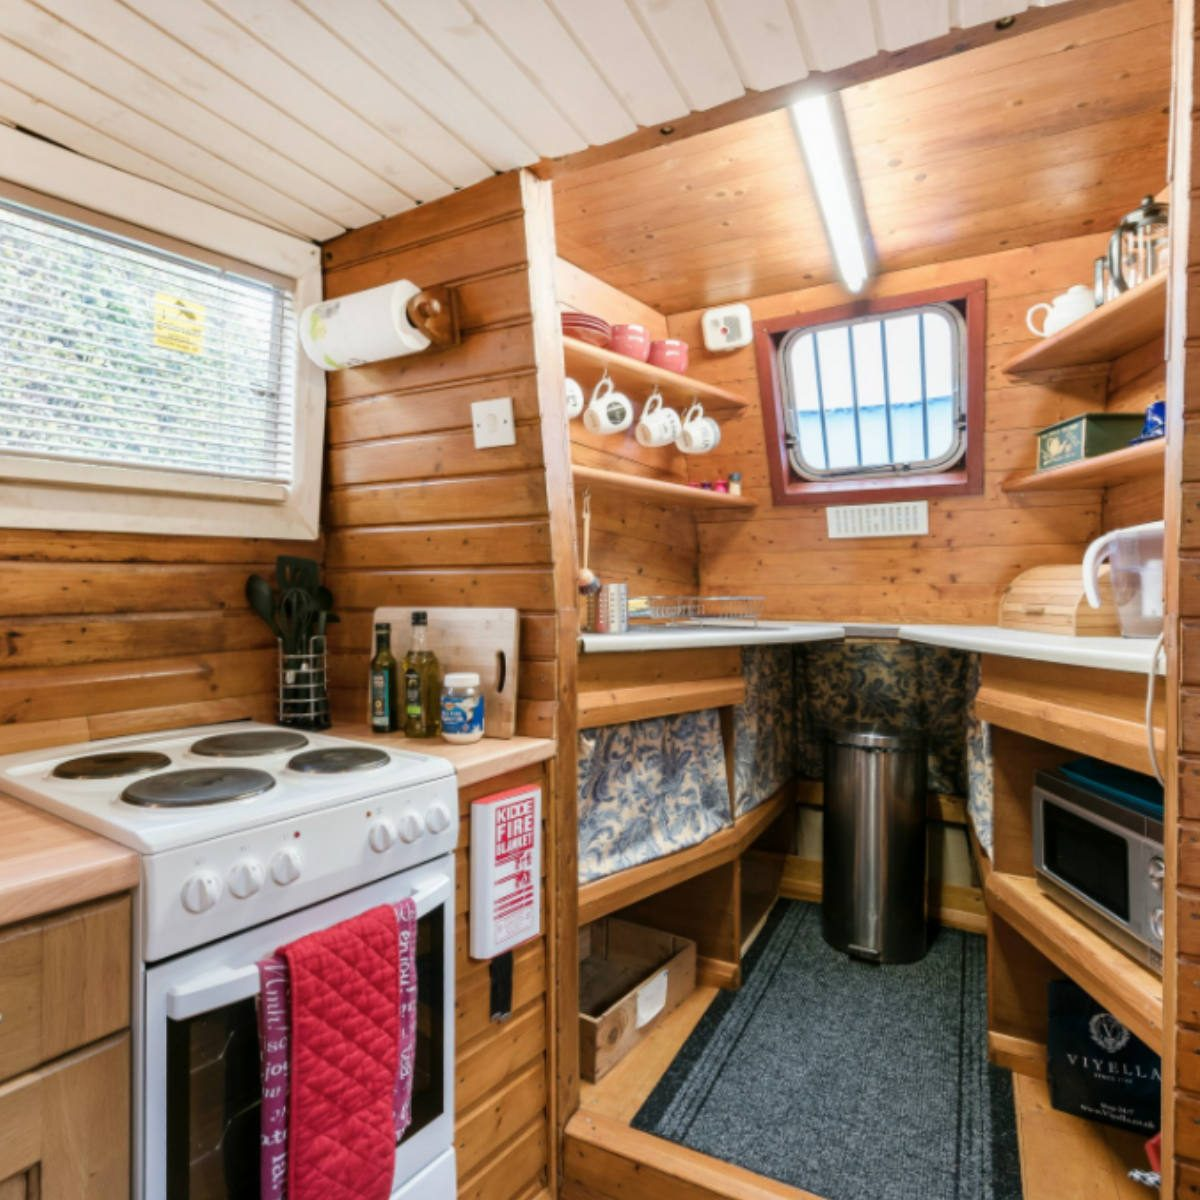 The Best Airbnb Cities For Home Decor Ideas: These 50 Airbnb Houseboats Are Like Living In A Floating